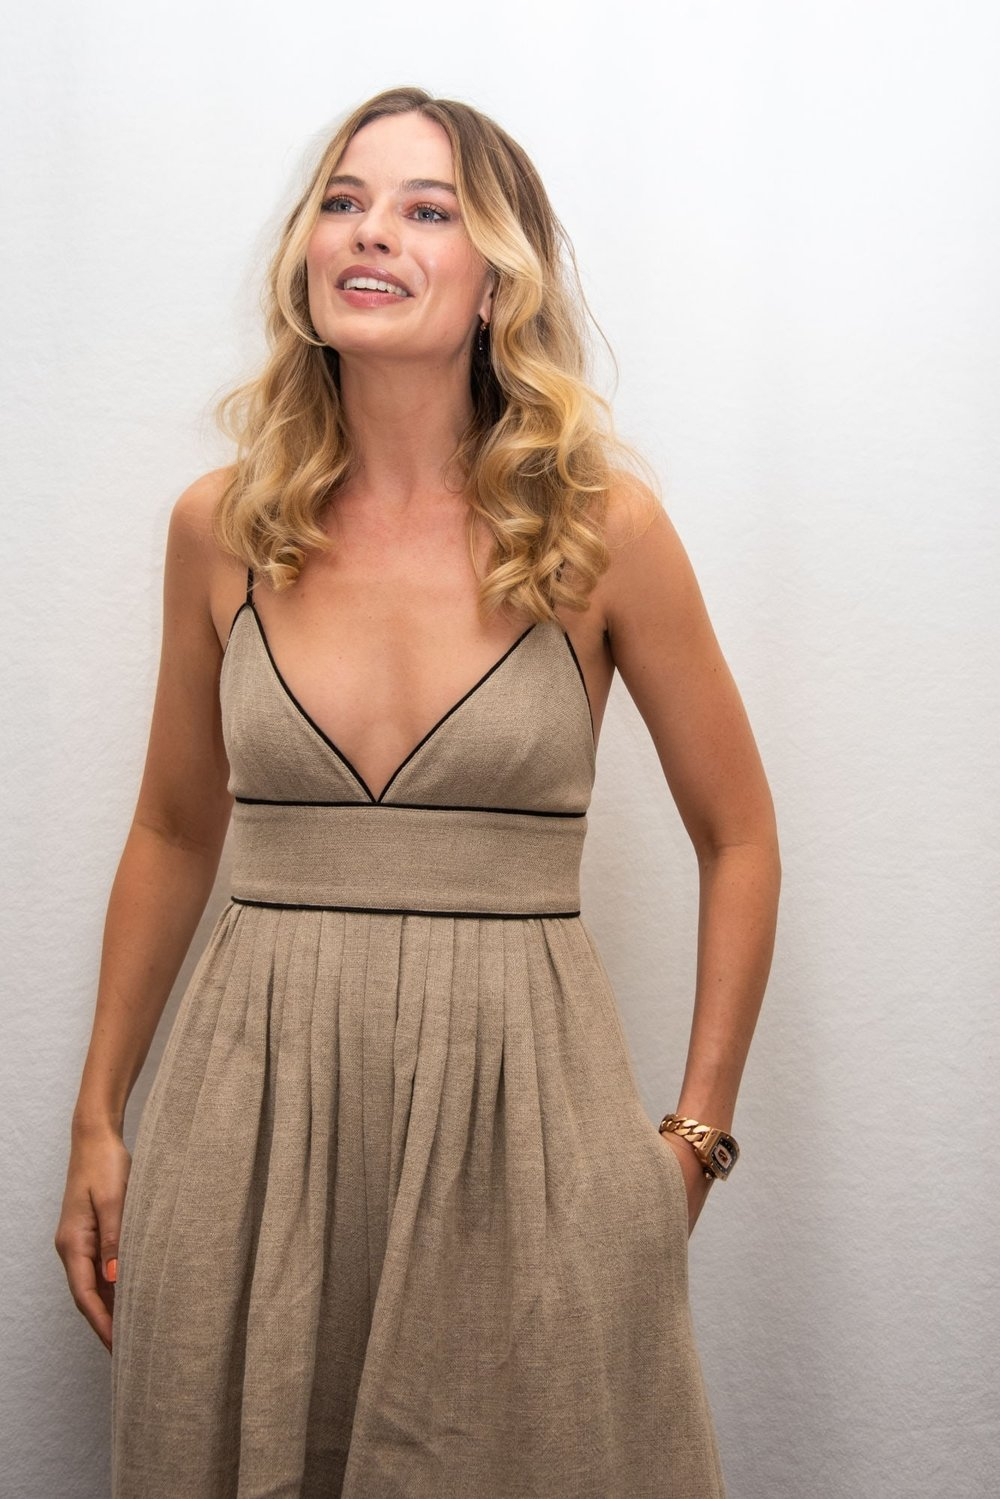 margot-robbie-straud-jumpsuit-once-upon-a-time.jpg